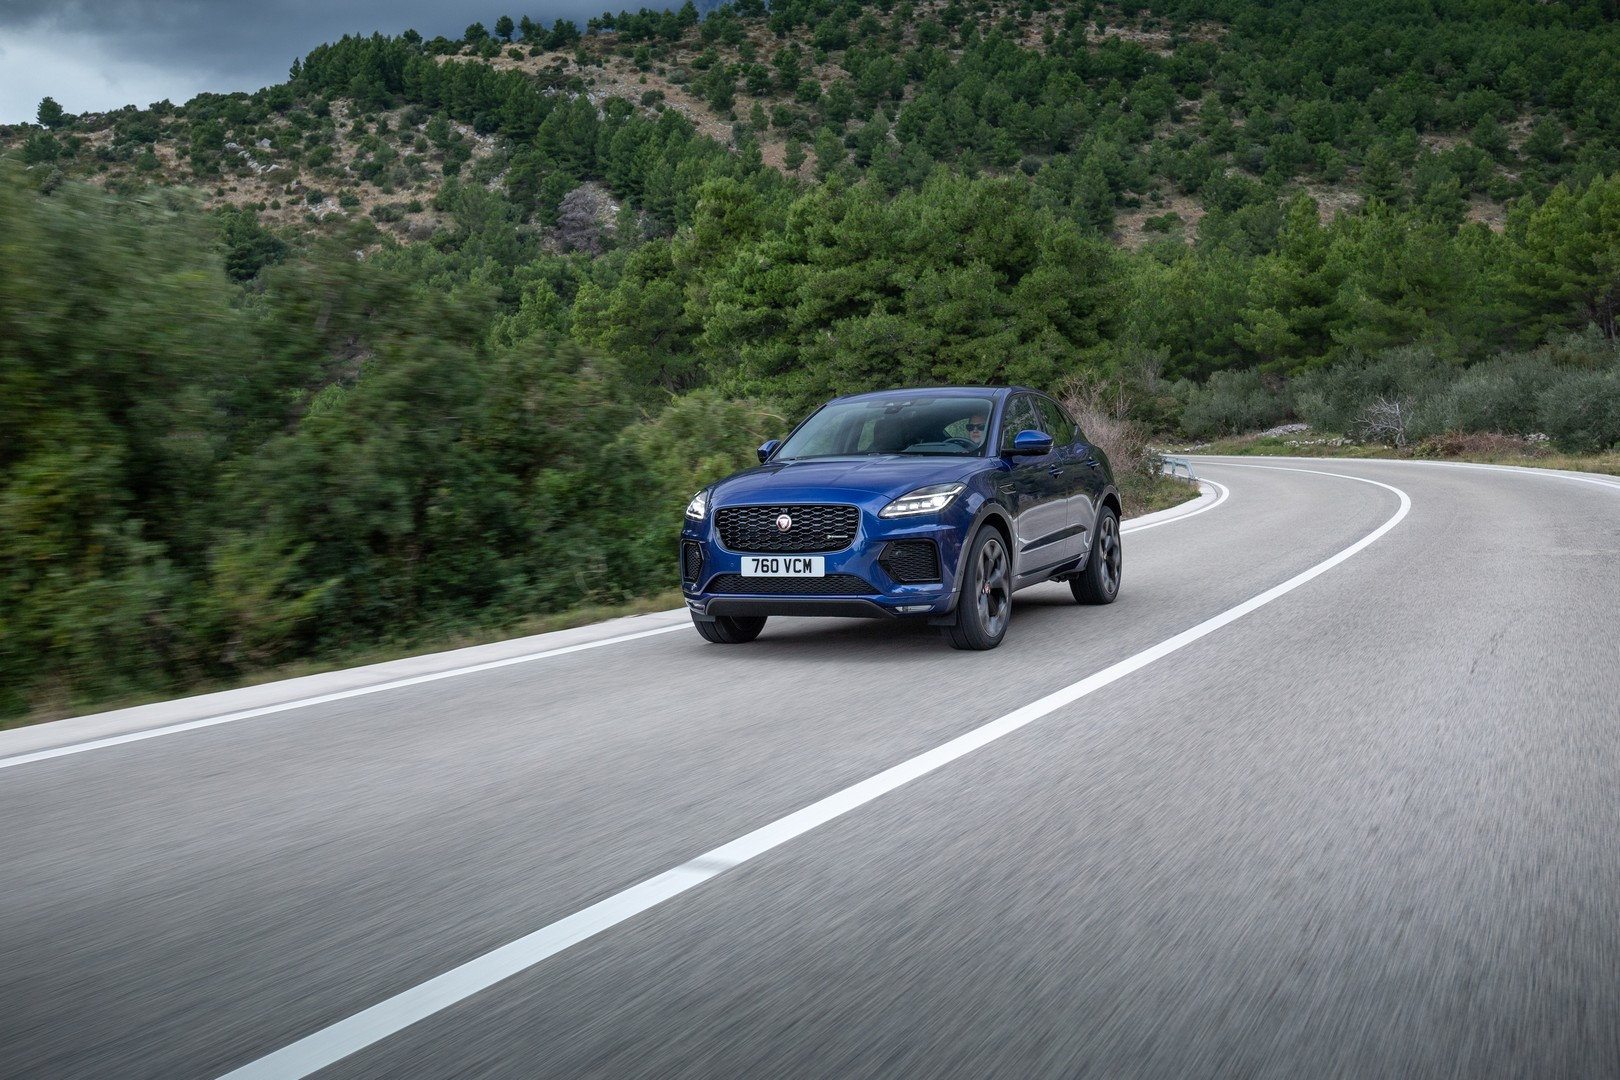 2021 Jaguar E-Pace Gets Updated to Complete the ...